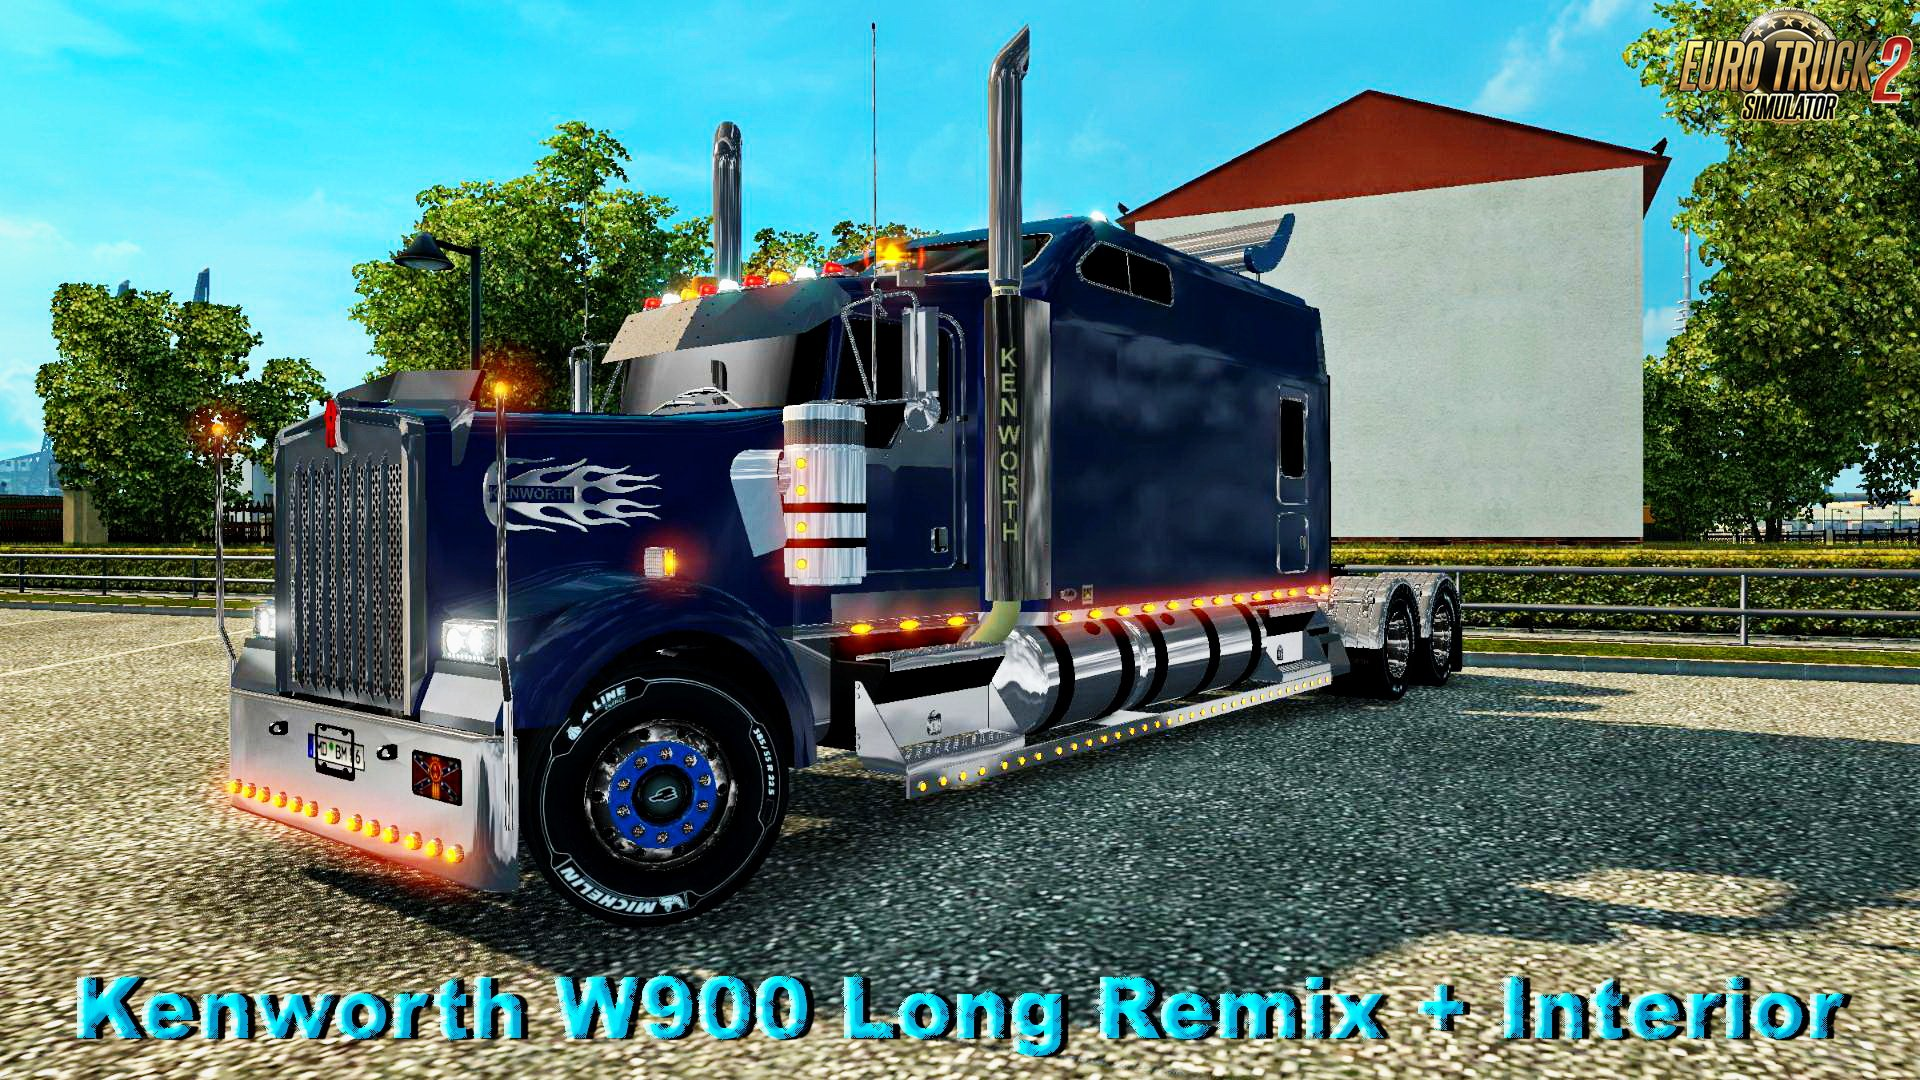 Kenworth W900 Long Remix + Interior v1.0 (1.26.x)